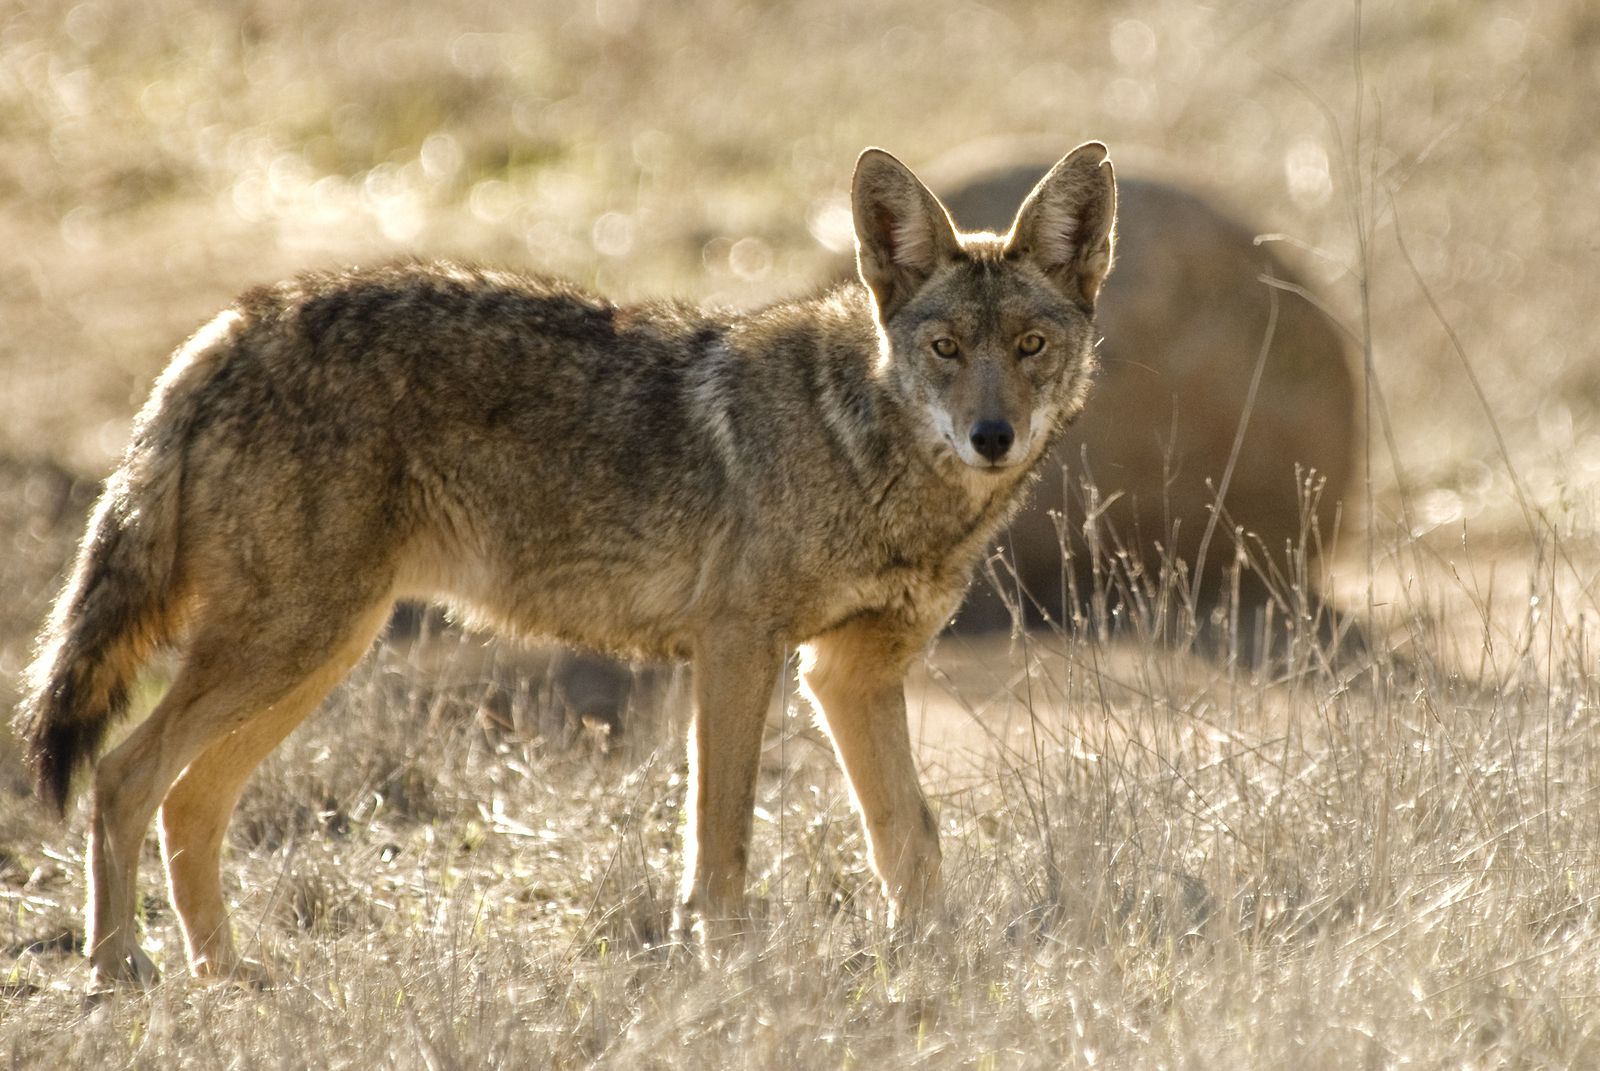 https://i2.wp.com/danthompsongamecalls.com/wp-content/uploads/2014/10/bigstock-Coyote-4186001.jpg